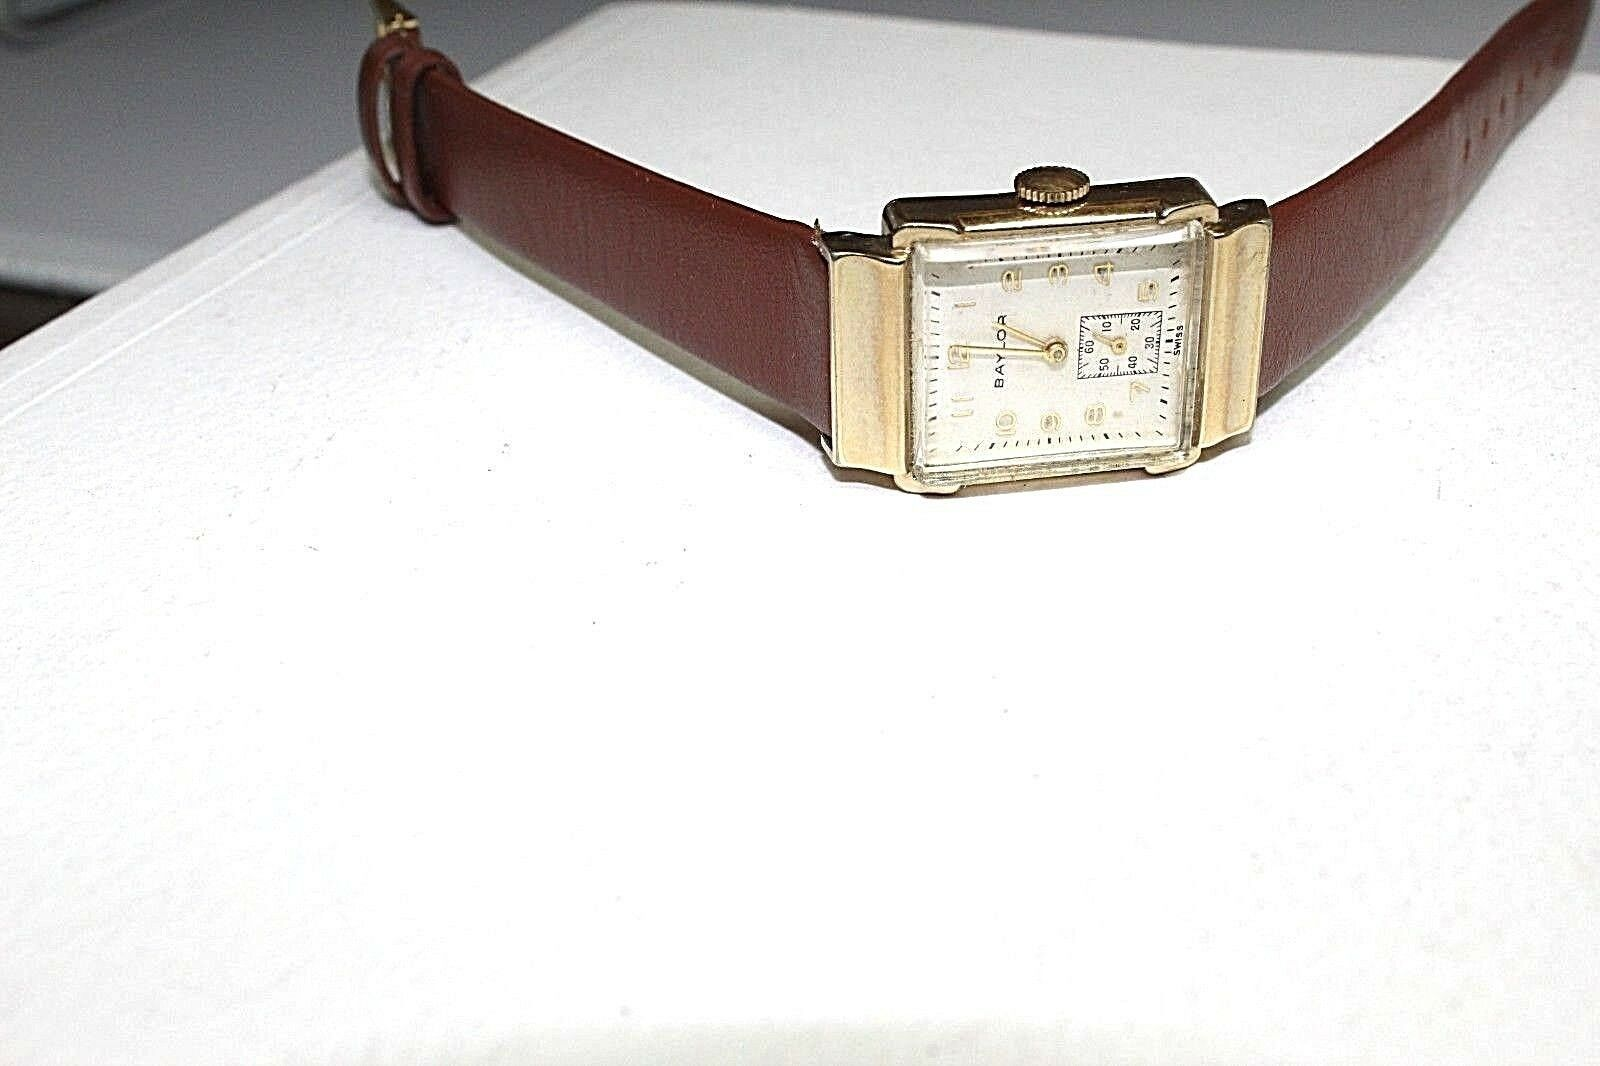 Baylor Swiss made vintage mechanical watch 17 jewels 10k gold filled